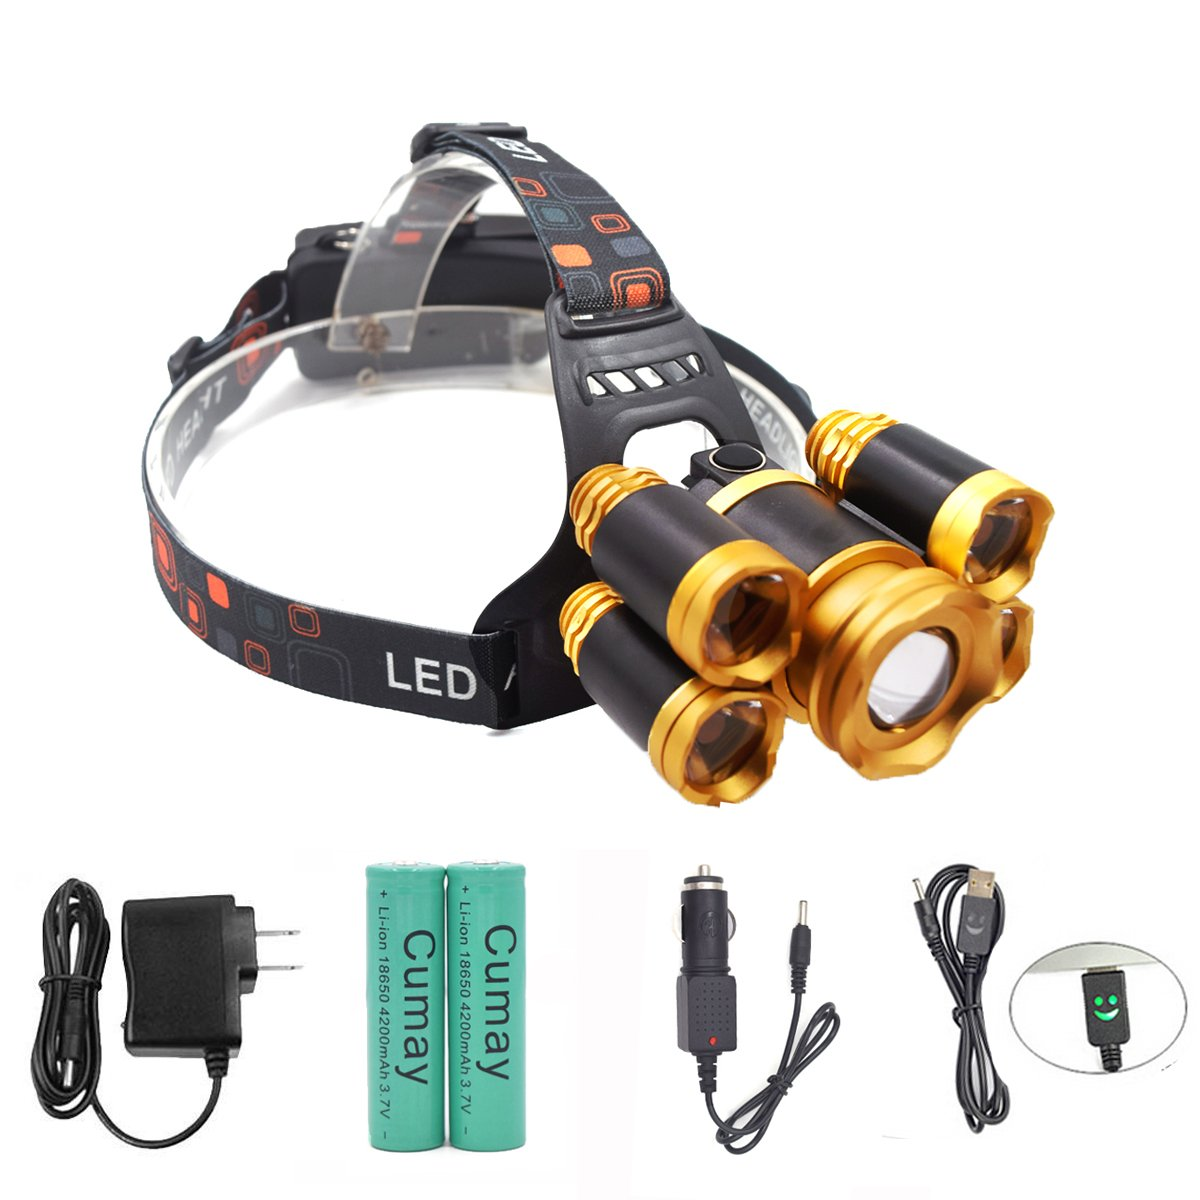 Rechargeable LED headlamp, Super Bright 4 Modes LED Headlight Waterproof, Zoomable Headlamps for Cycling, Running, Dog Walking, Camping, Hiking, Fishing